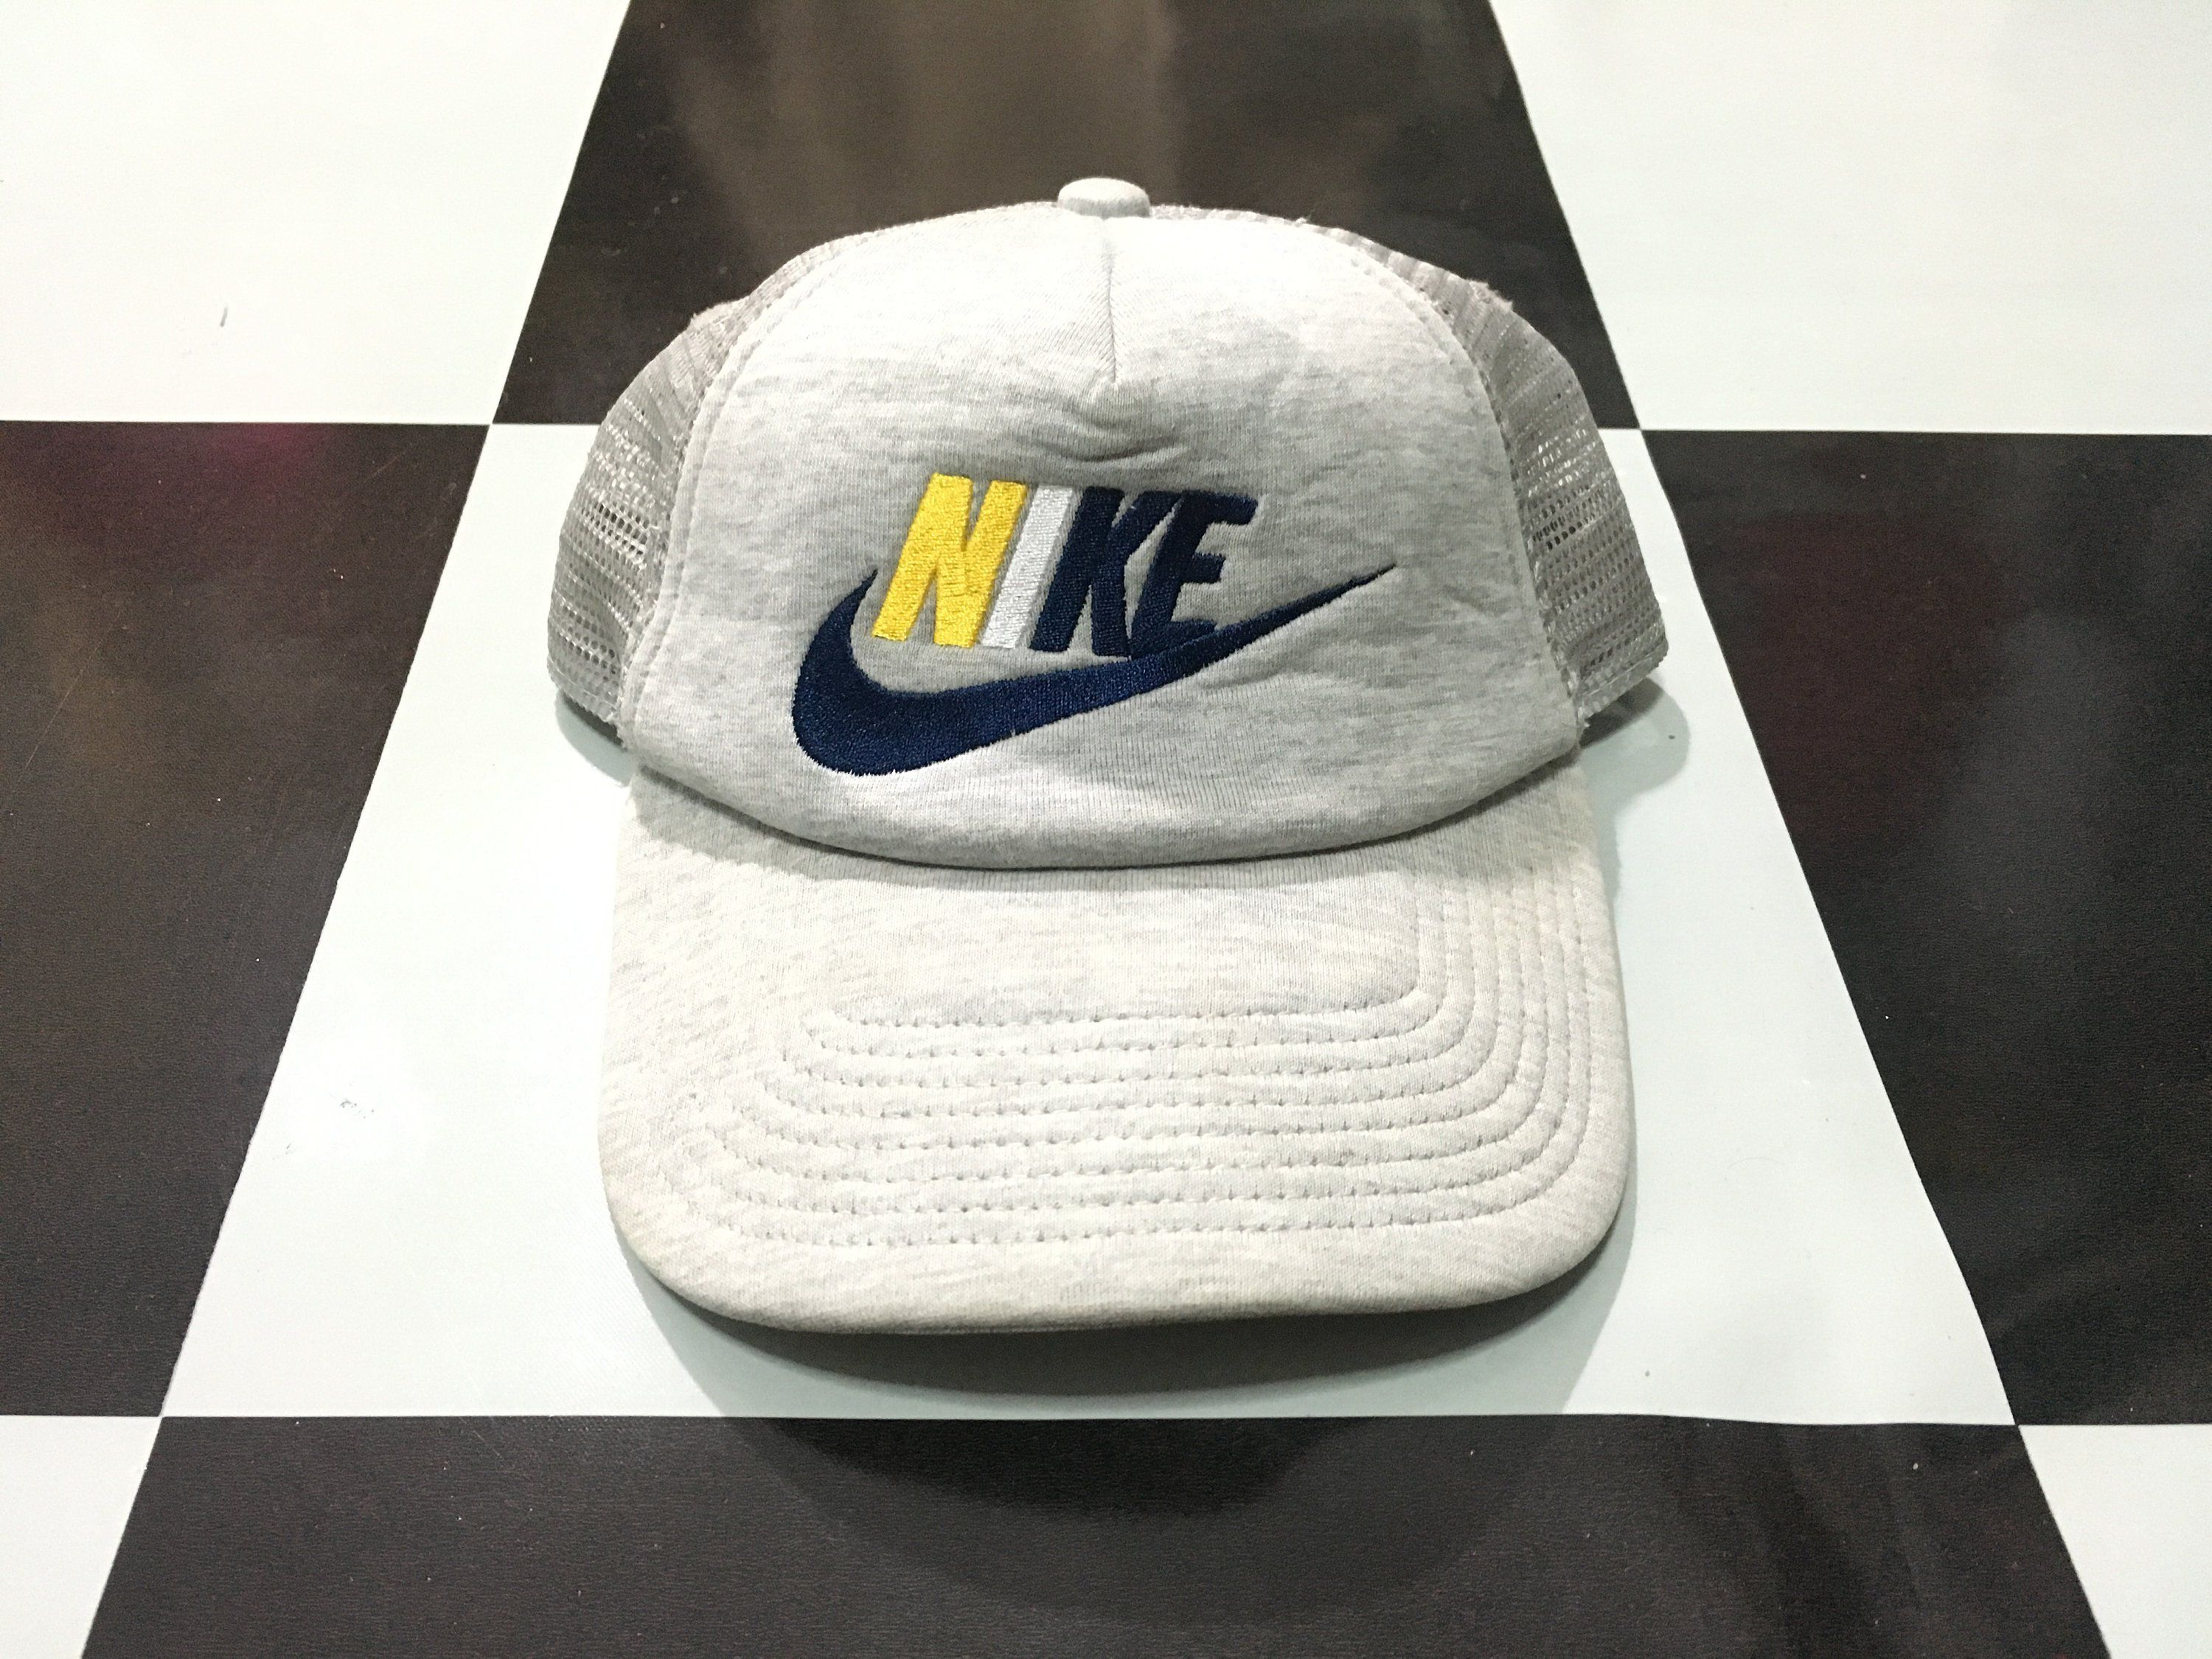 Vintage Nike cap spell out multi color swoosh logo embroidered trucker cap  Gray 90s Nike gray tag Excellent condition by AlivevintageShop on Etsy 8941f539c32